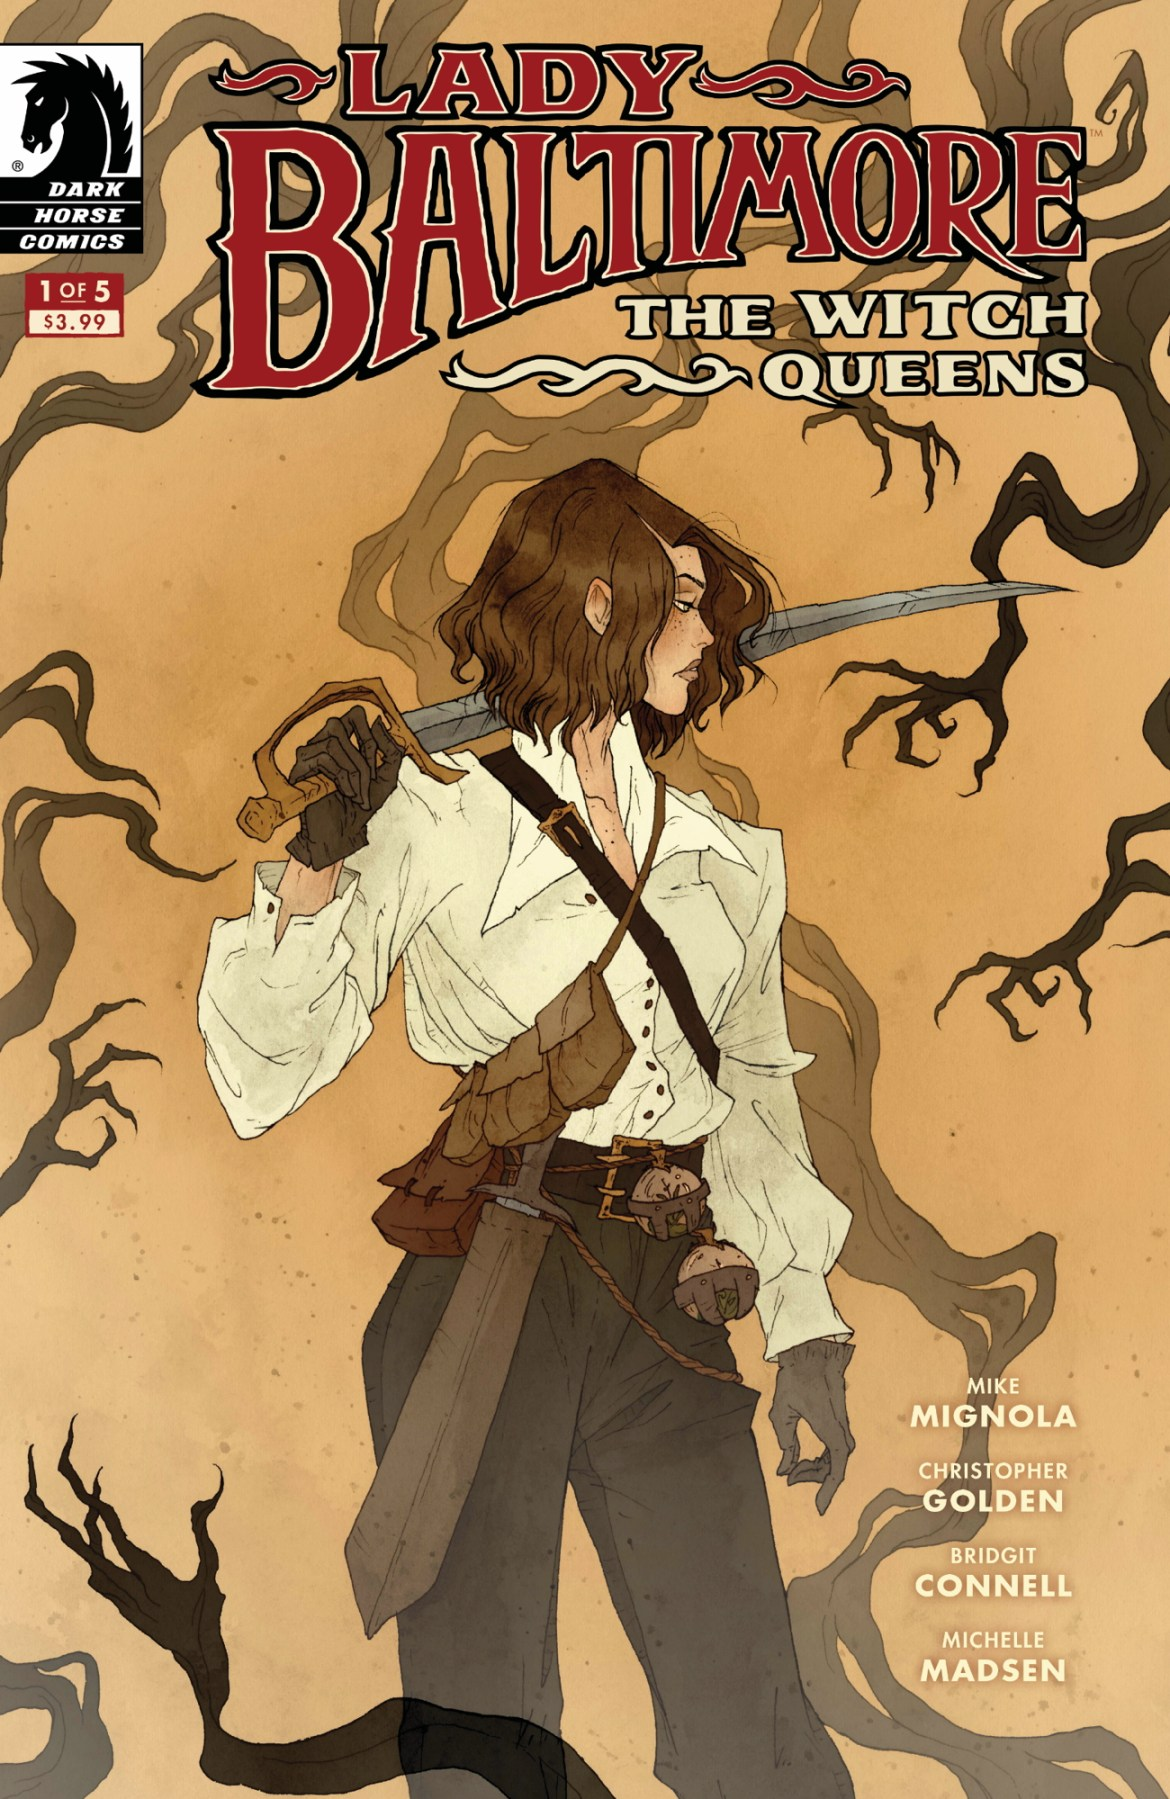 outerversecov2 Mike Mignola and friends return for three new Dark Horse comics